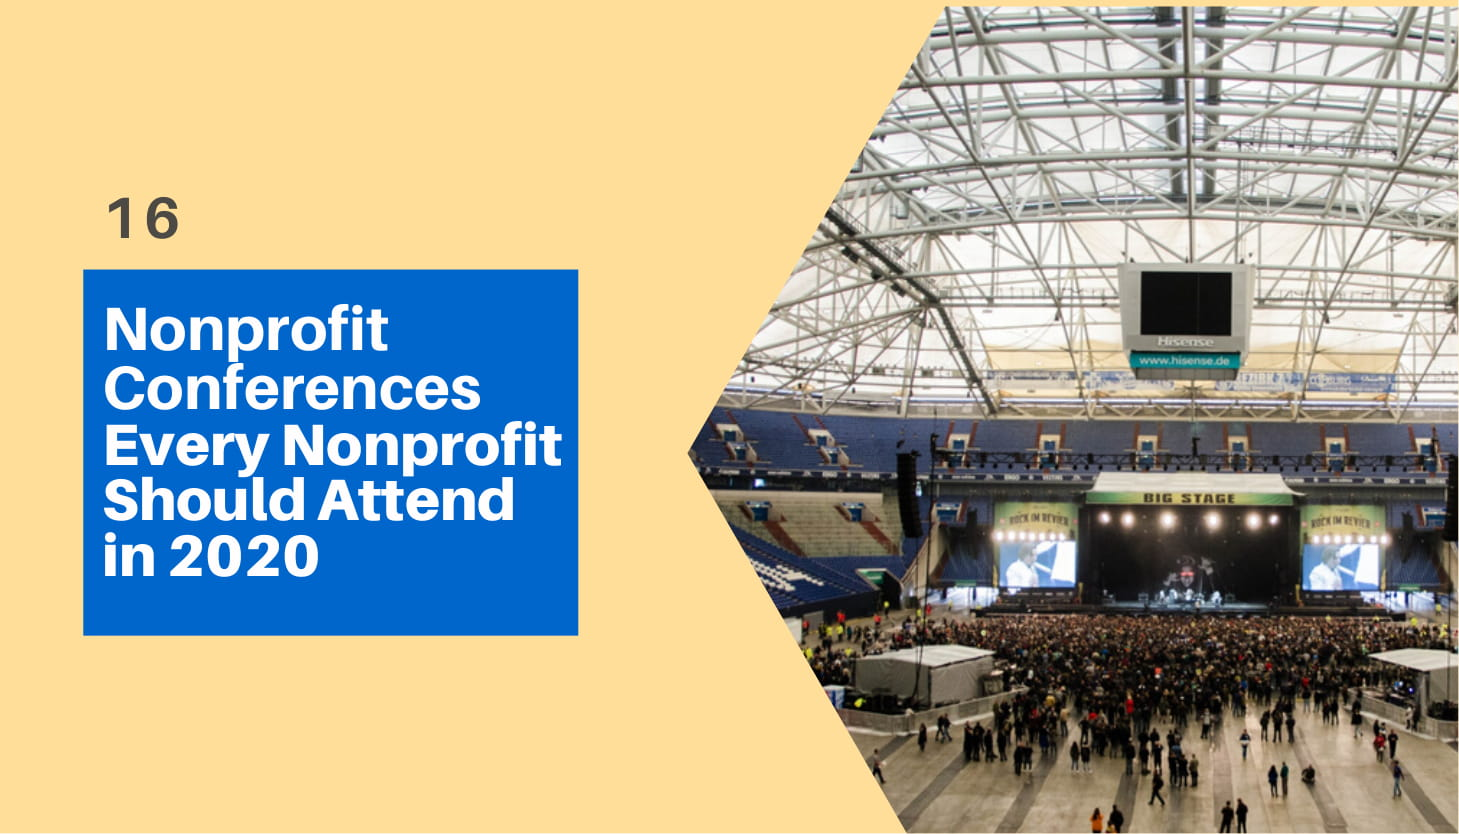 16 Nonprofit Conferences Every Nonprofit Should Attend in 2020